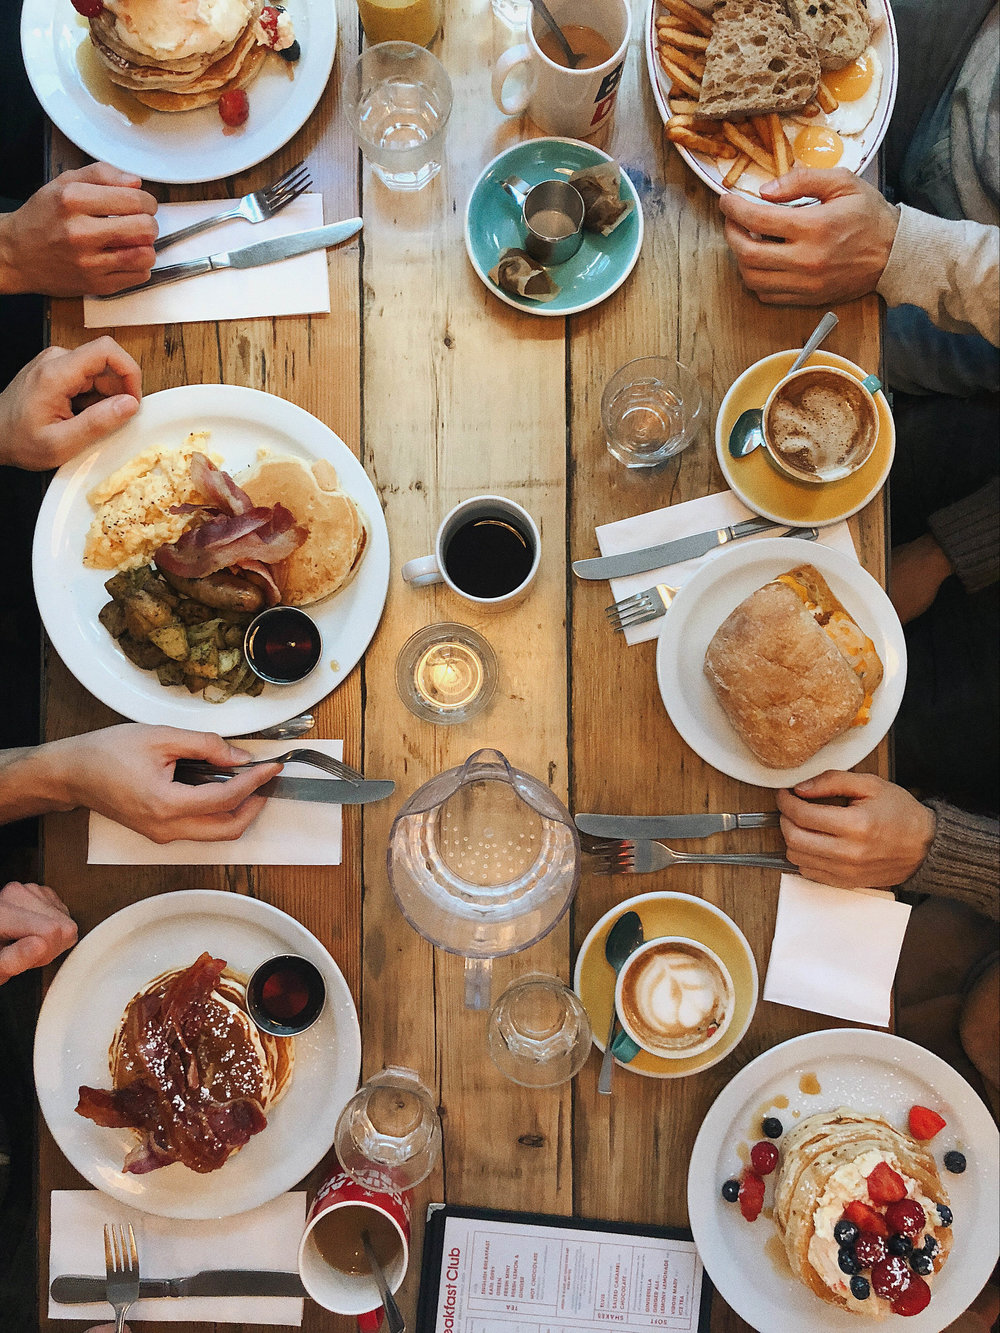 The Perfect Pairing: Which Foods Go Best With Coffee